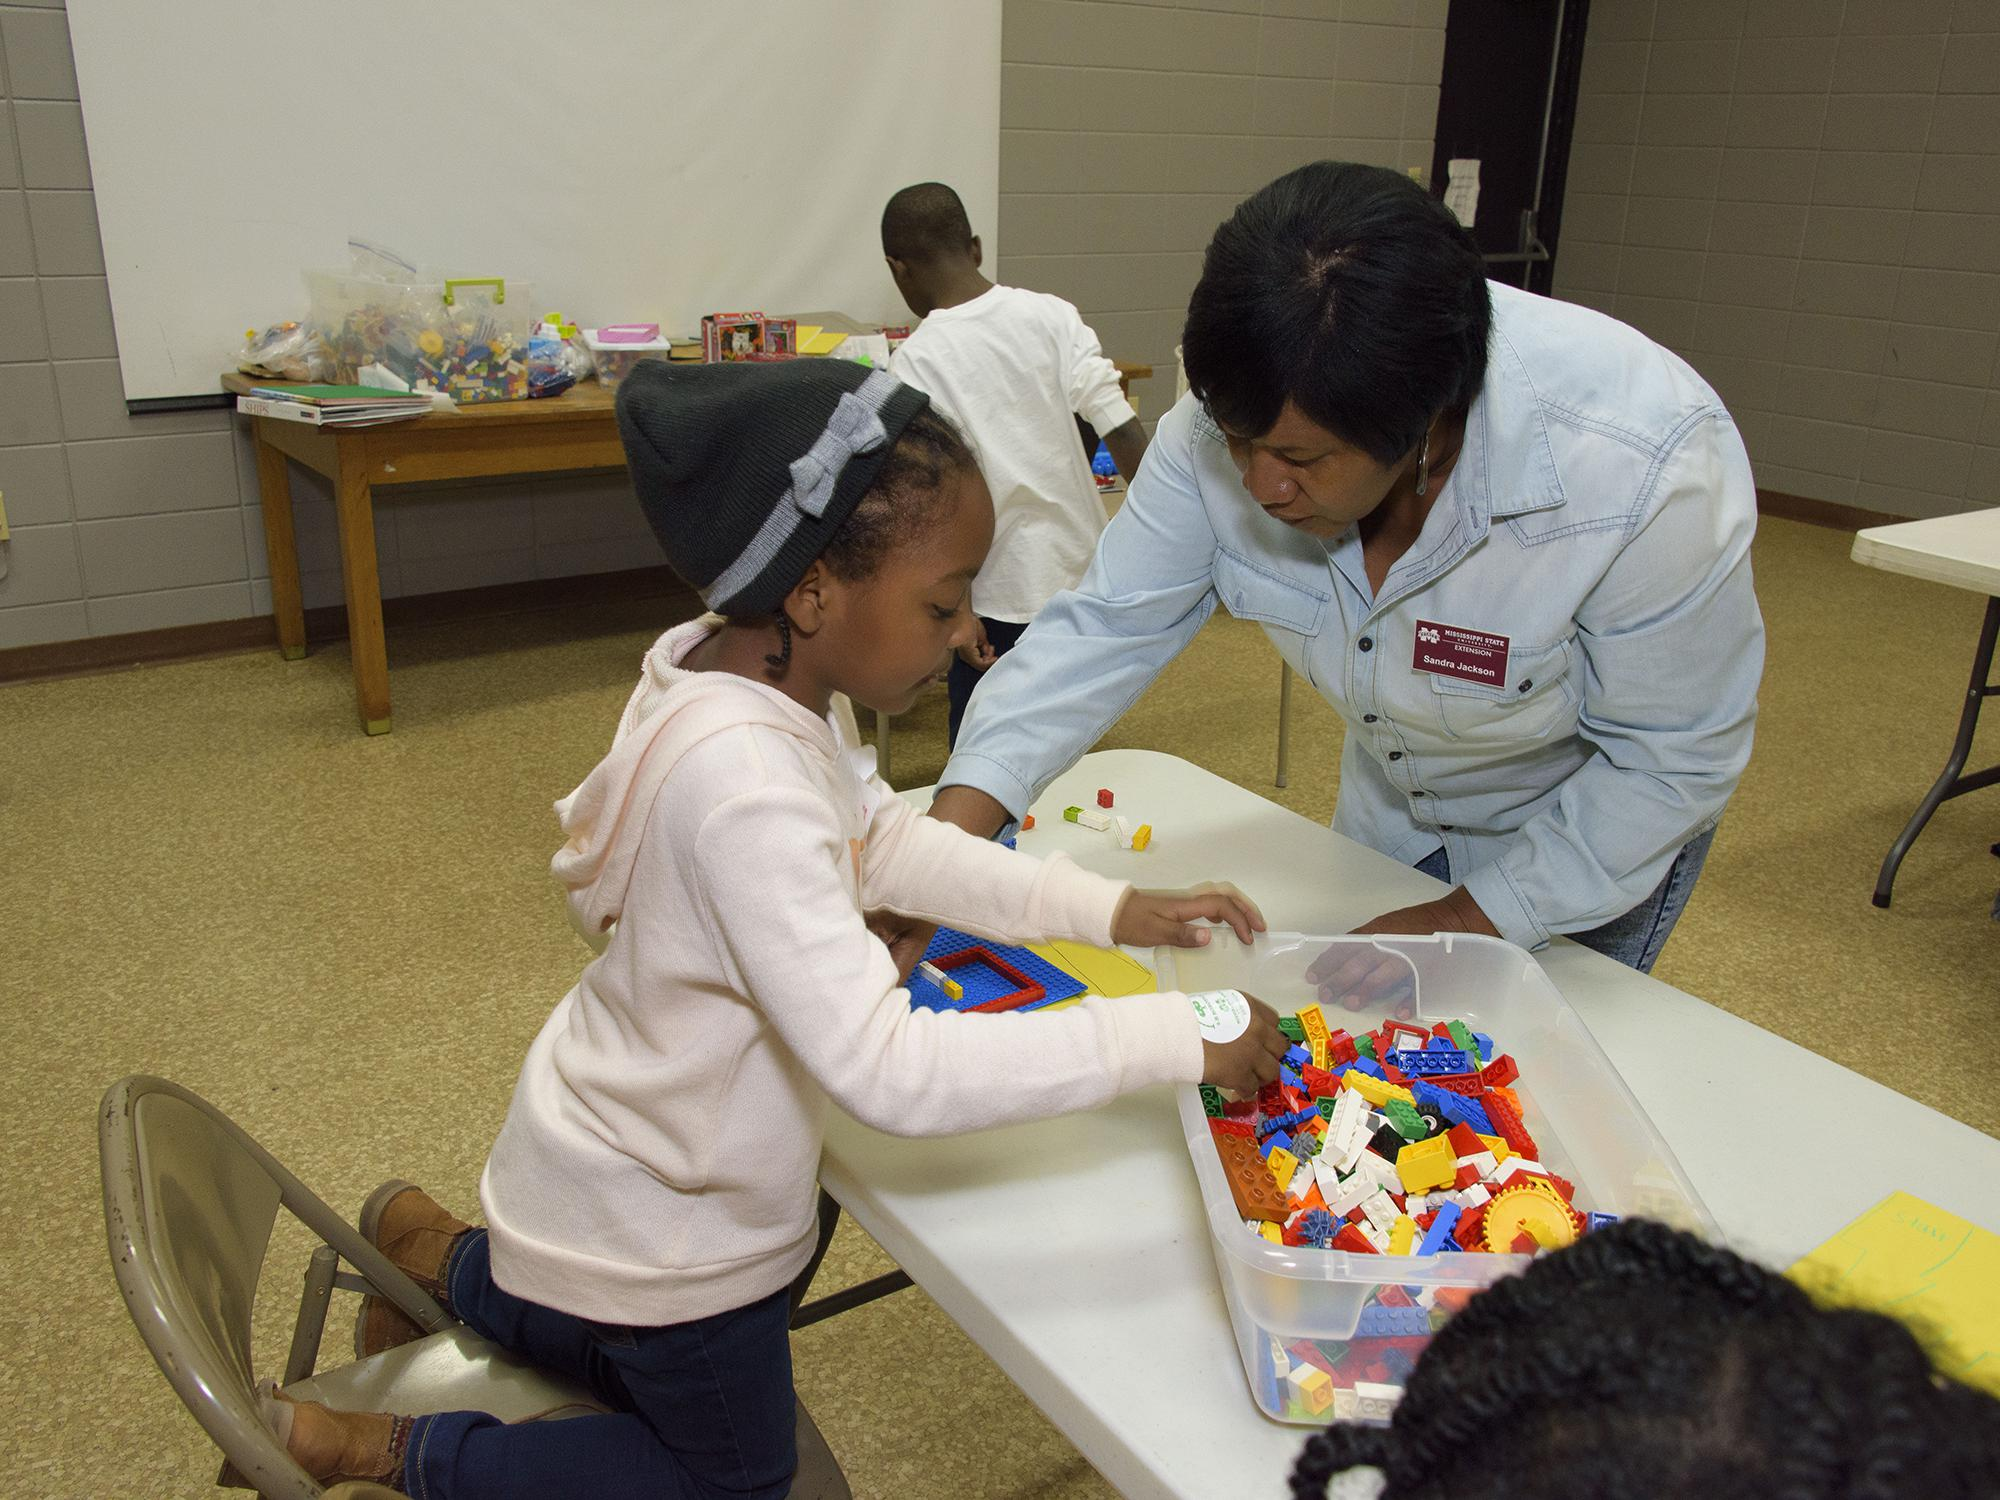 Sandra Jackson, an agent of the Mississippi State University Extension Service in Winston County, helps 6-year-old Akilah Goss assemble a Lego maze March 16, 2017. Jackson was the first agent to teach the 4-H Lego Engineering Club curriculum, which is a STEM program geared toward 4-H'ers aged 5 to 7. (Photo by MSU Extension/Kevin Hudson)